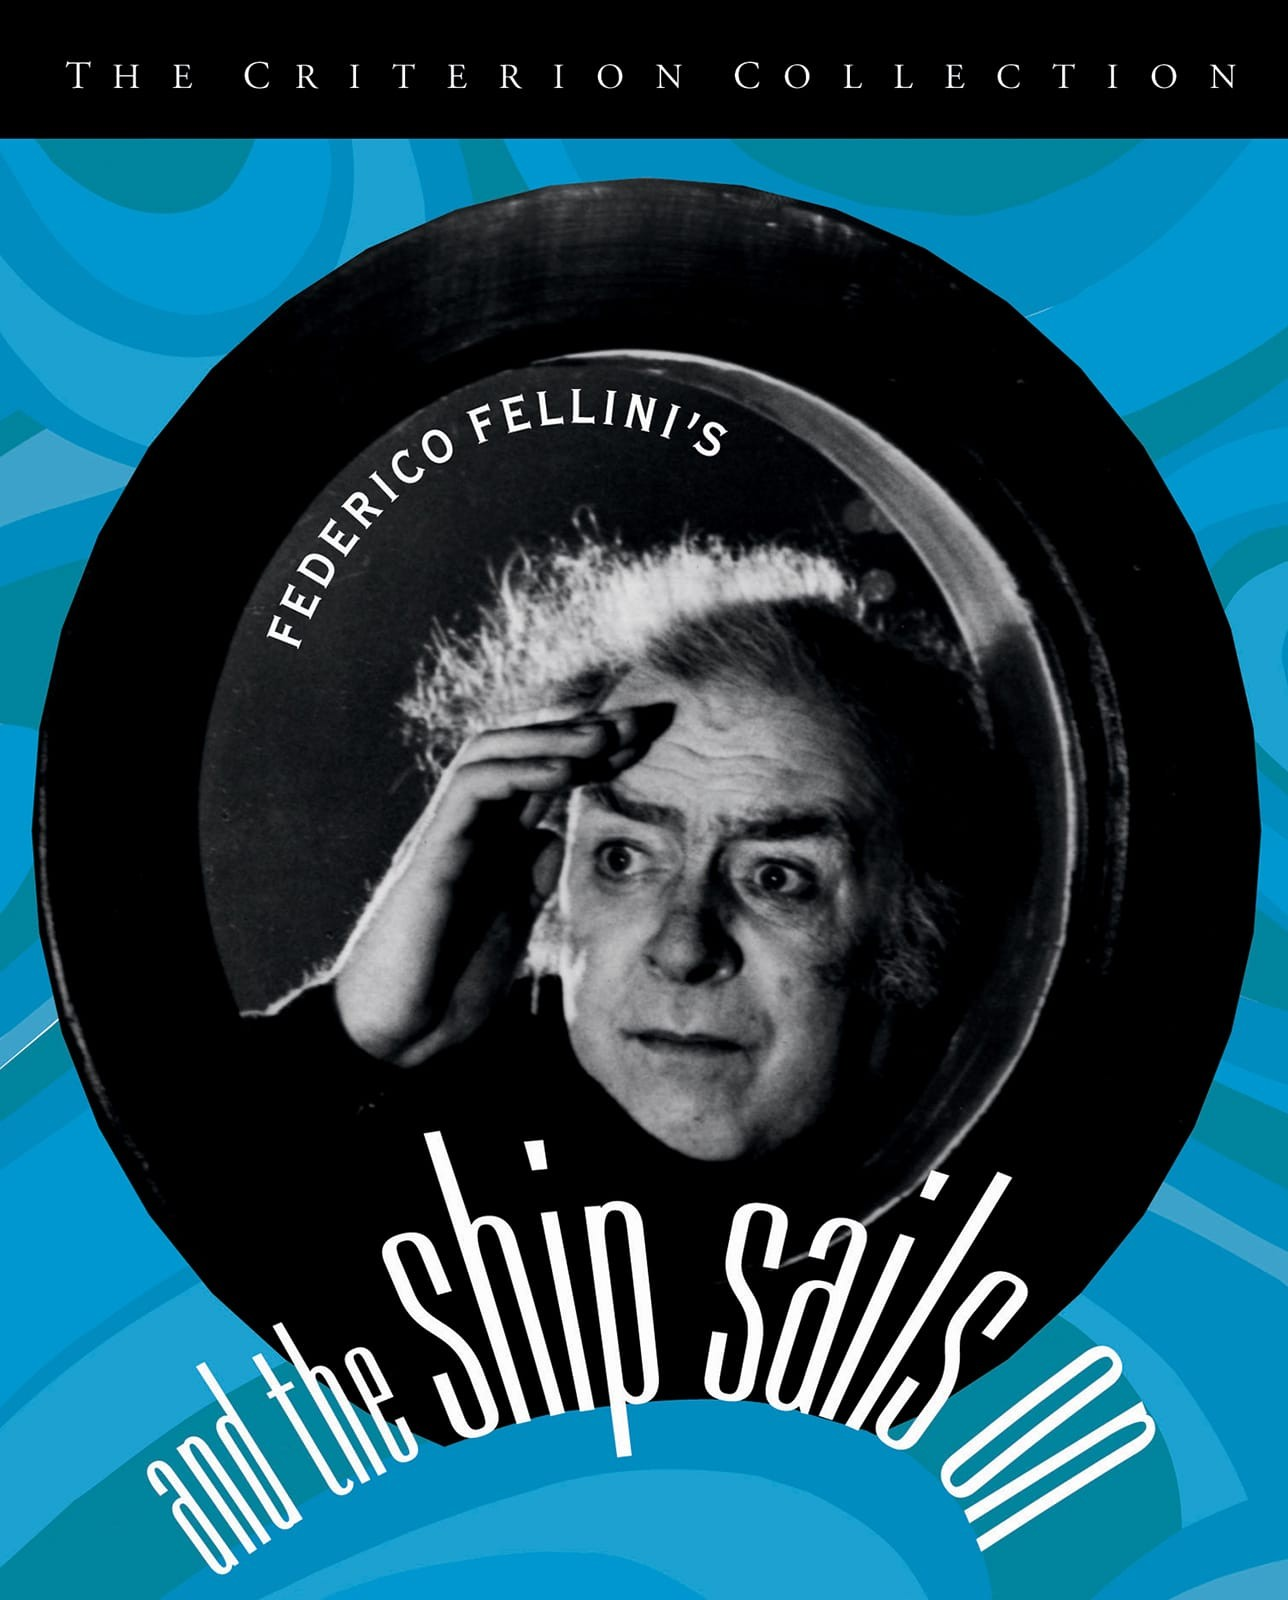 Image result for and the ship sails on criterion